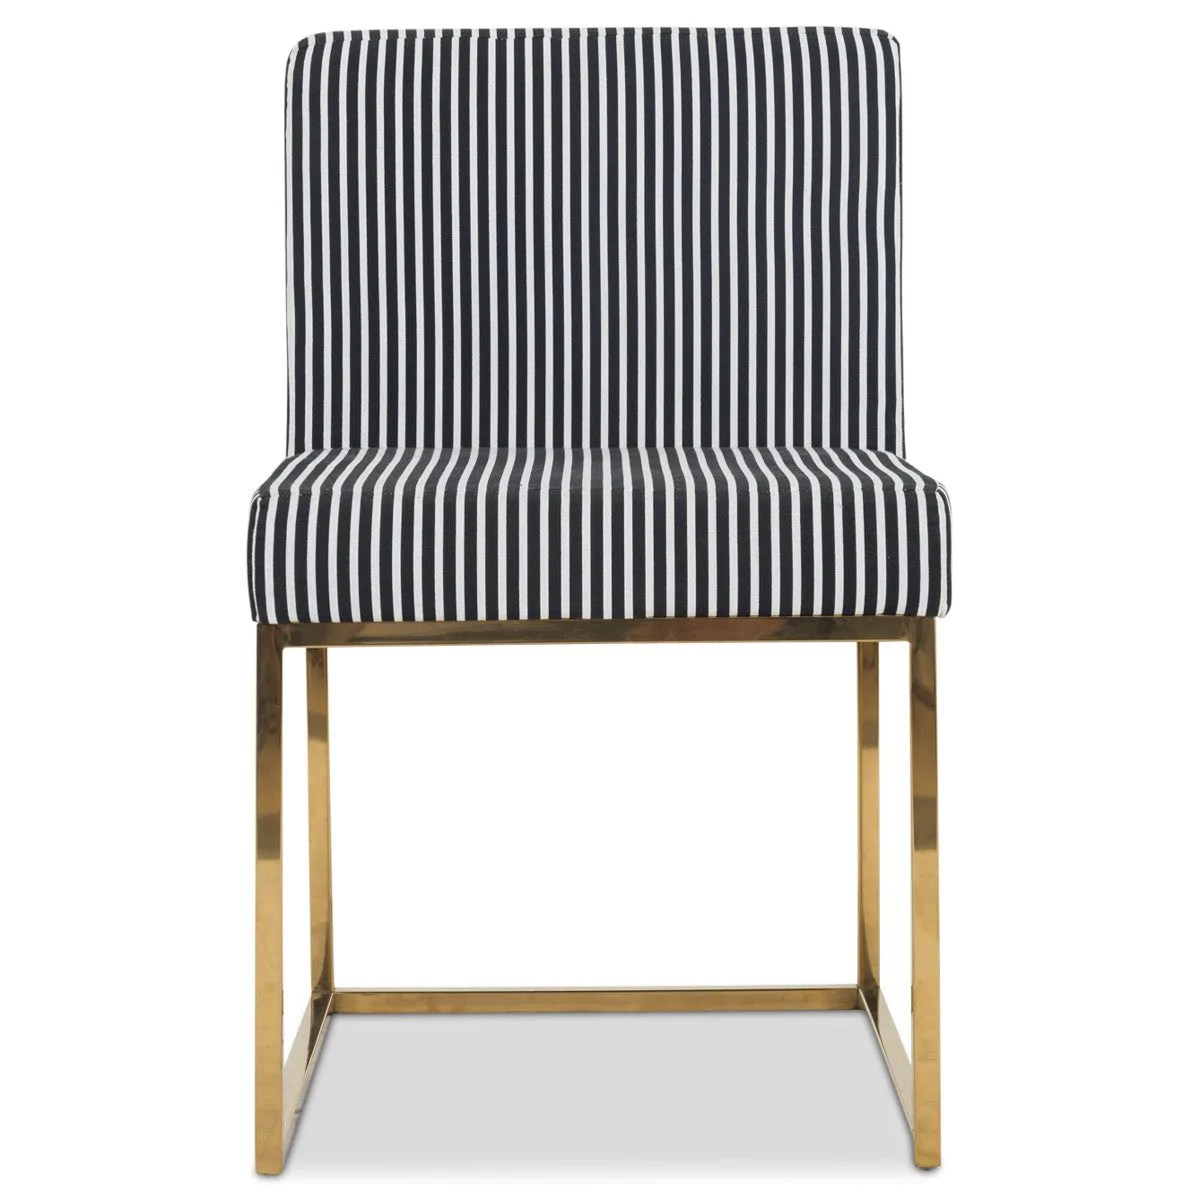 Black And White Dining Chair Modern Black And White Striped Dining Chair Modshop